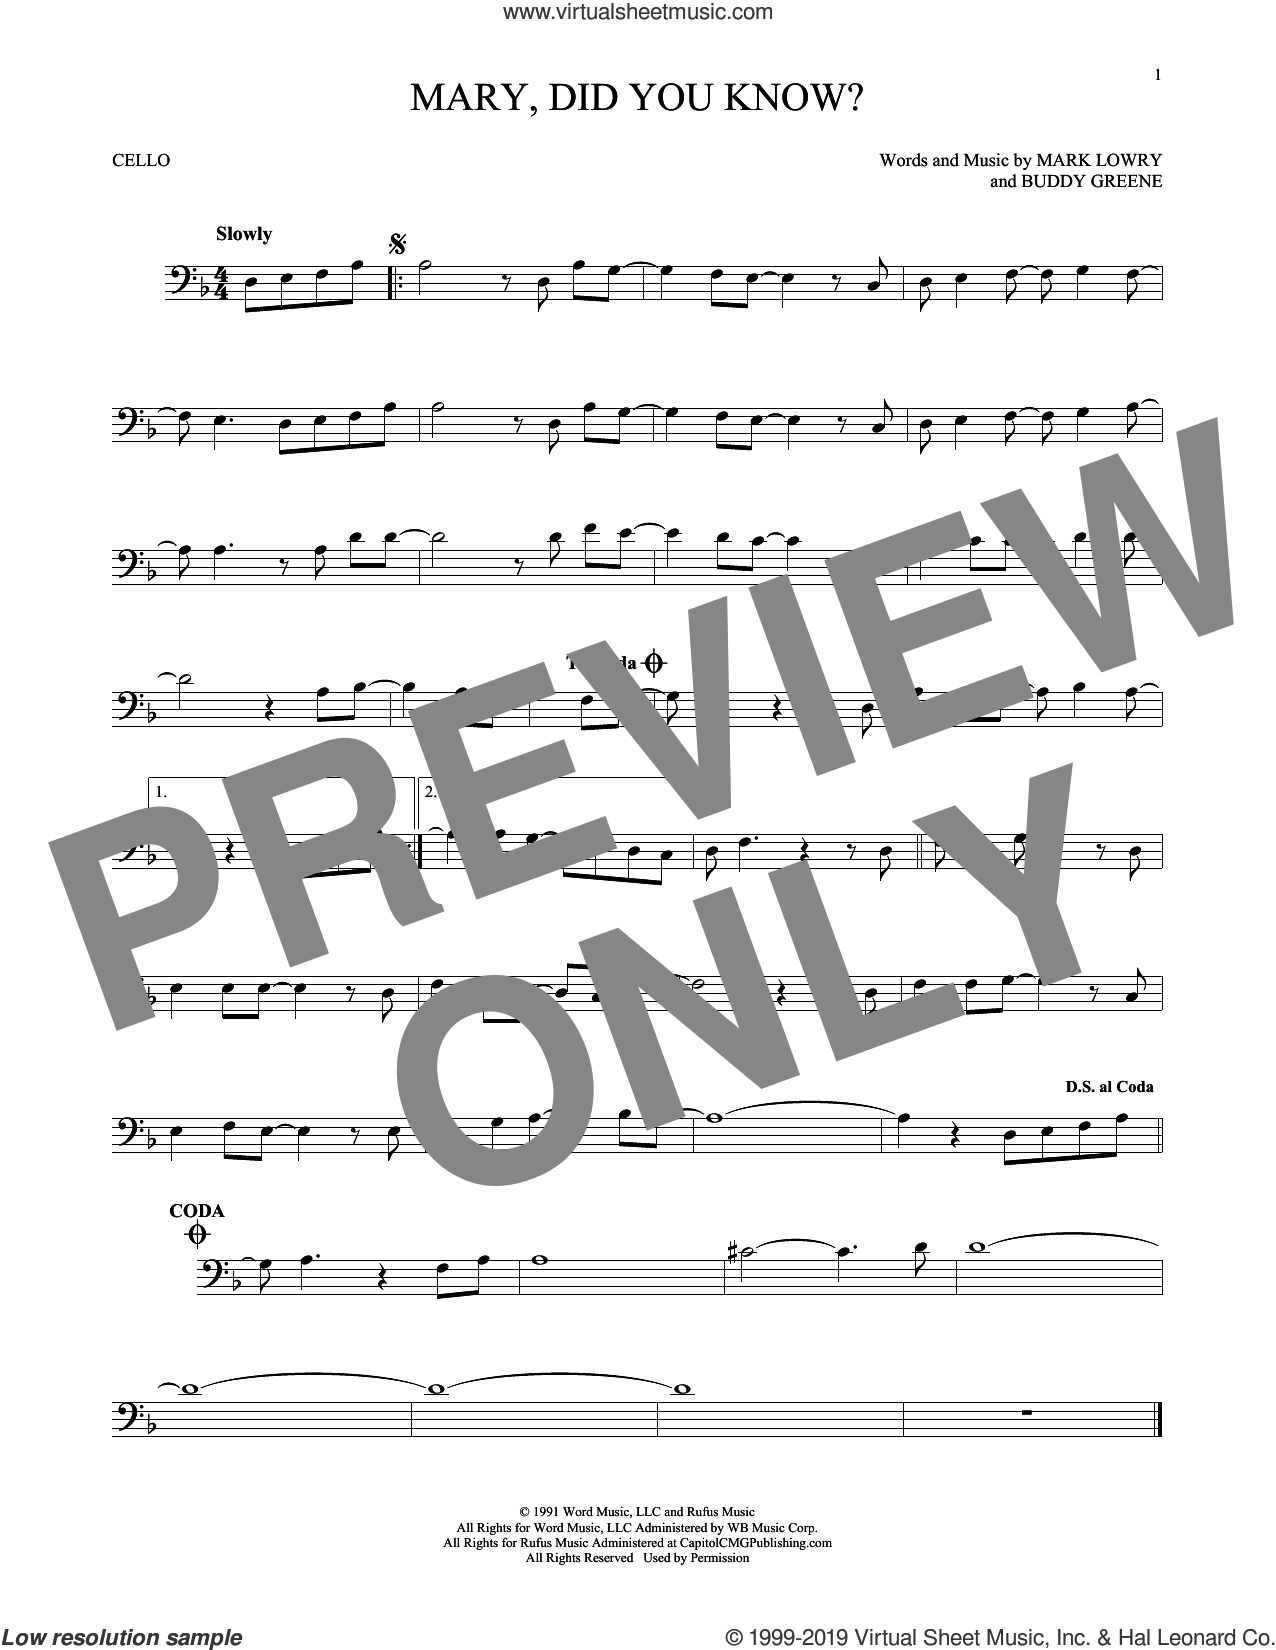 Mary, Did You Know? sheet music for cello solo by Buddy Greene and Mark Lowry, intermediate skill level